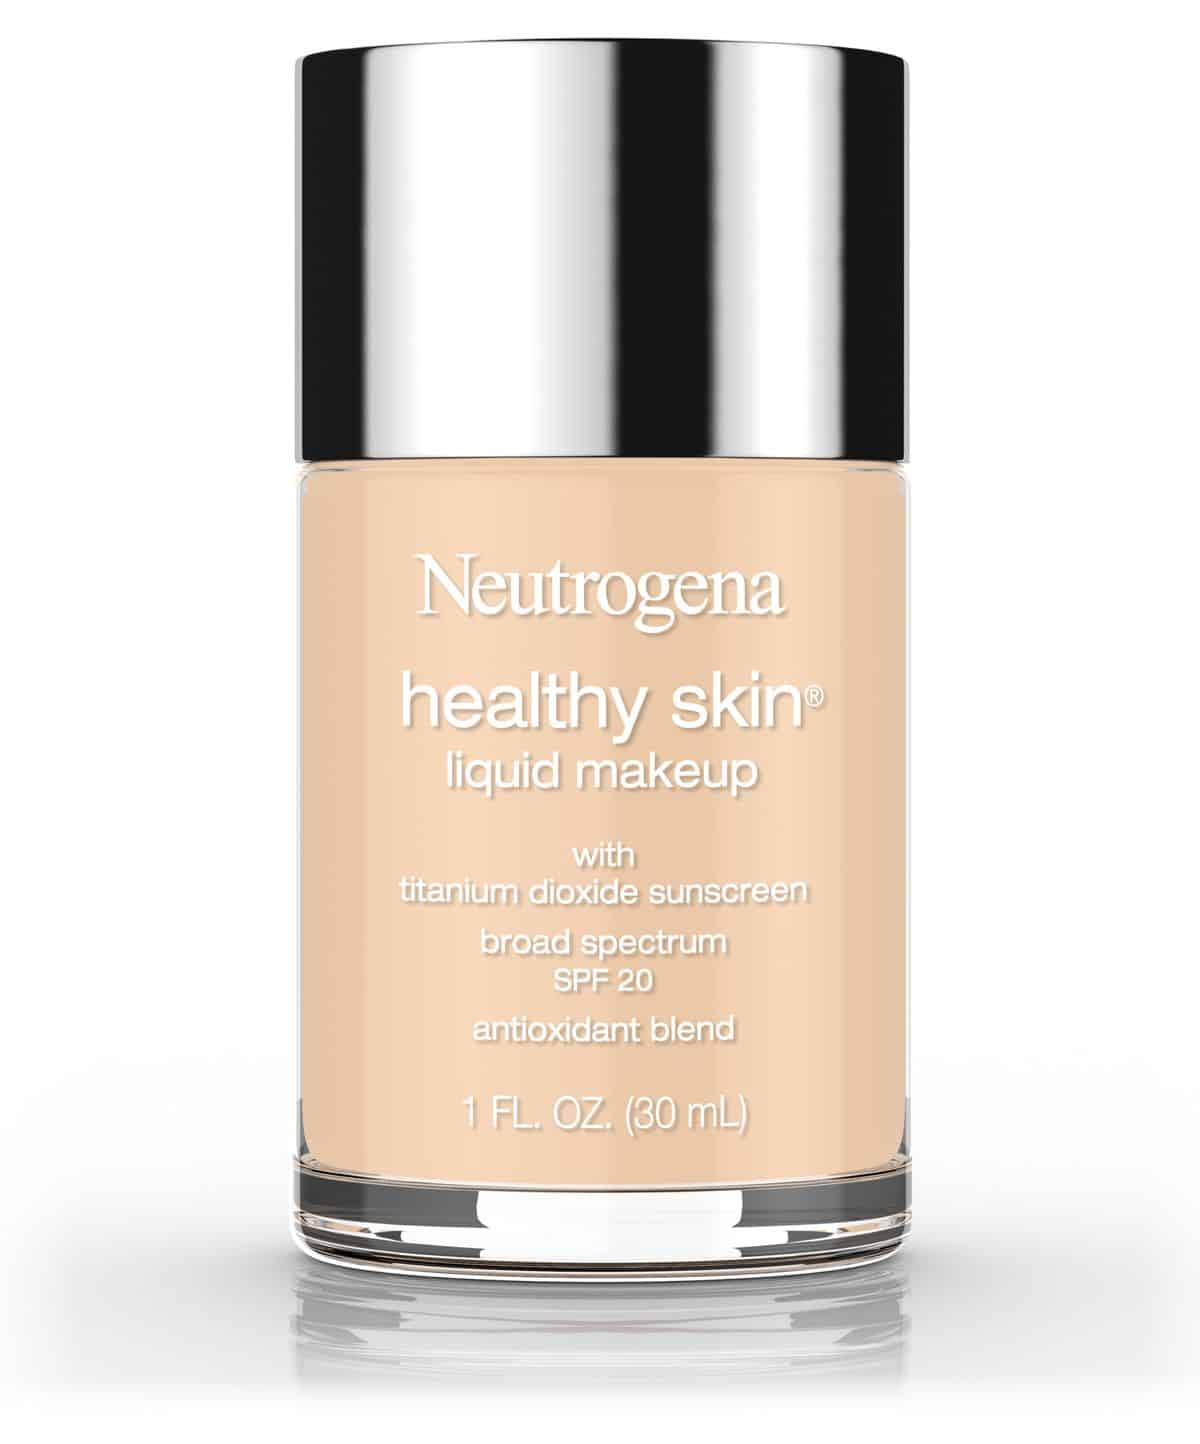 Neutrogena Healthy Skin Makeup